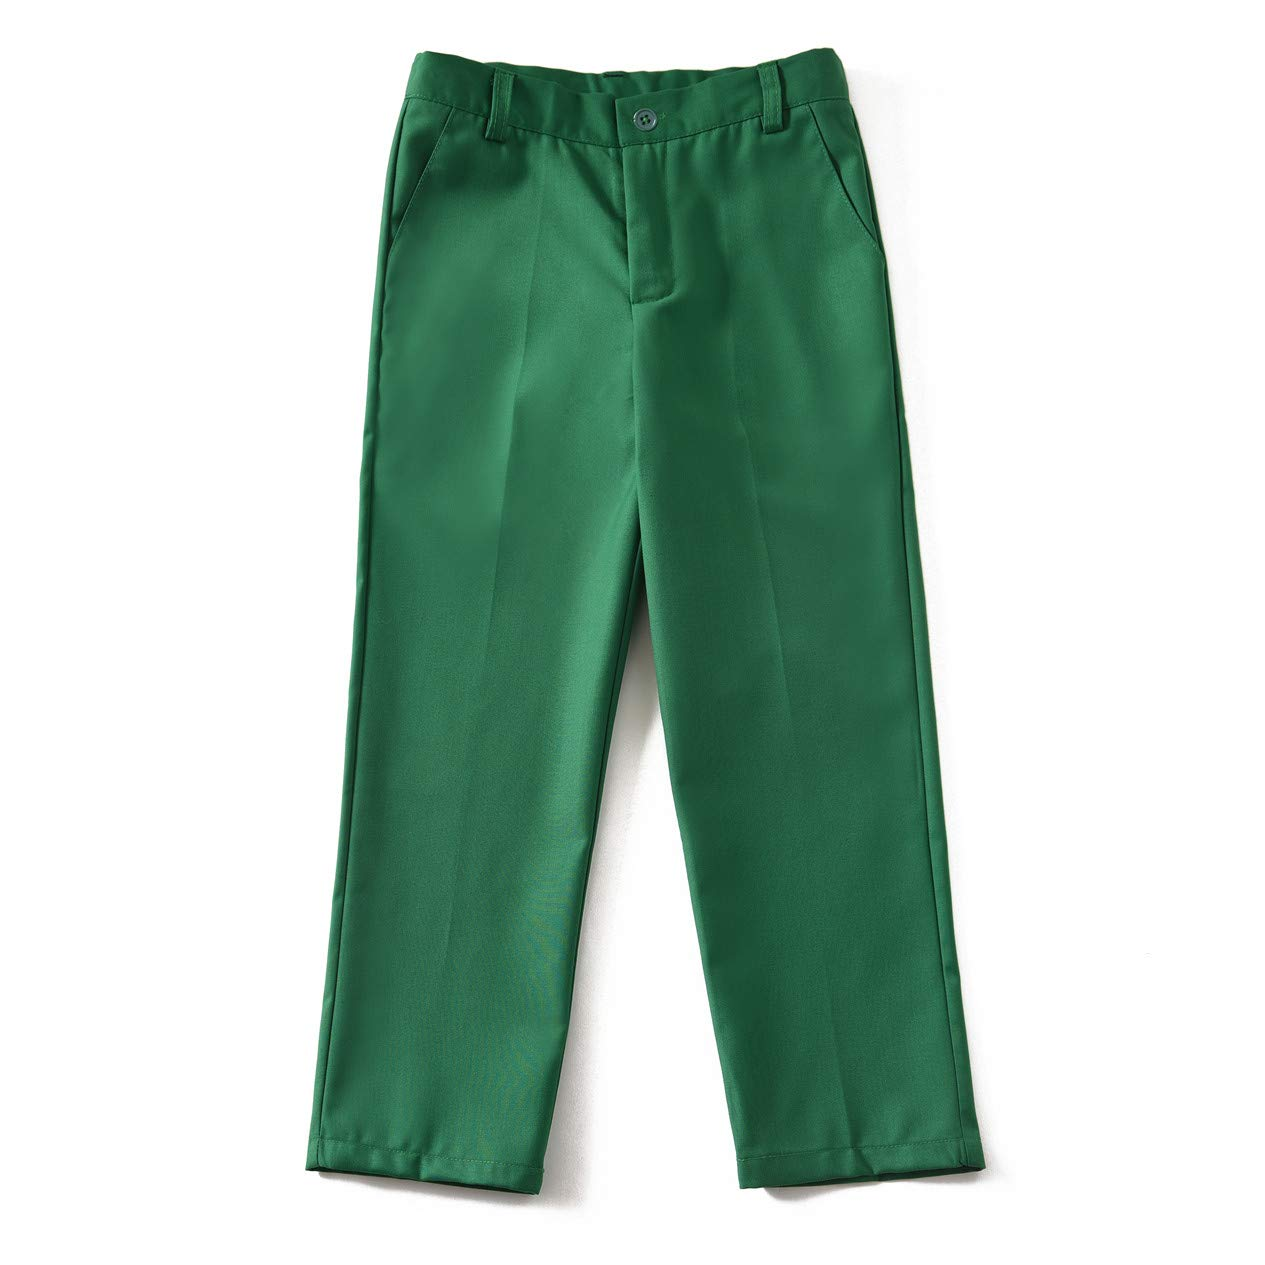 Boys Vest and Pants Set Kids Suit for Boy Formal Tuxedo Dresswear Outfit Green Size 7 by Visaccy (Image #6)